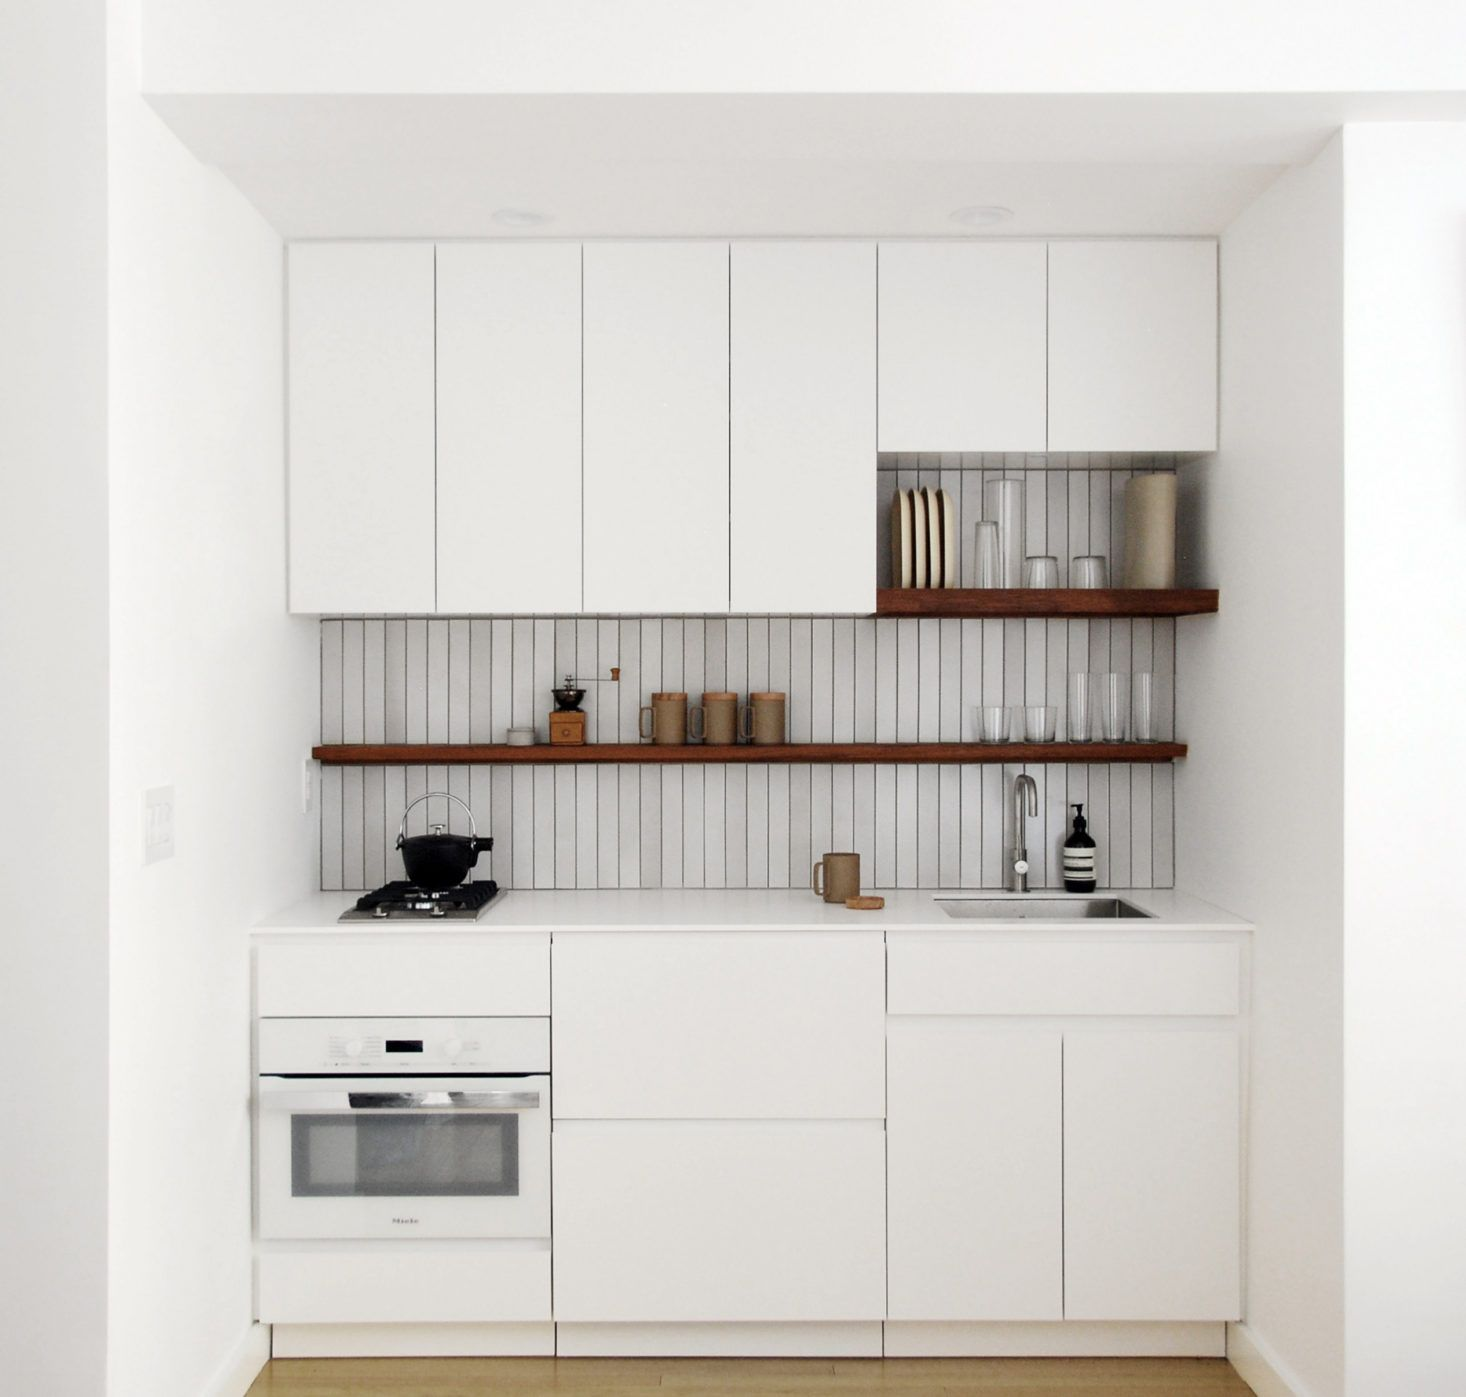 A Tiny Kitchen Made for Cooking: Everything You Need in 26 Square ...